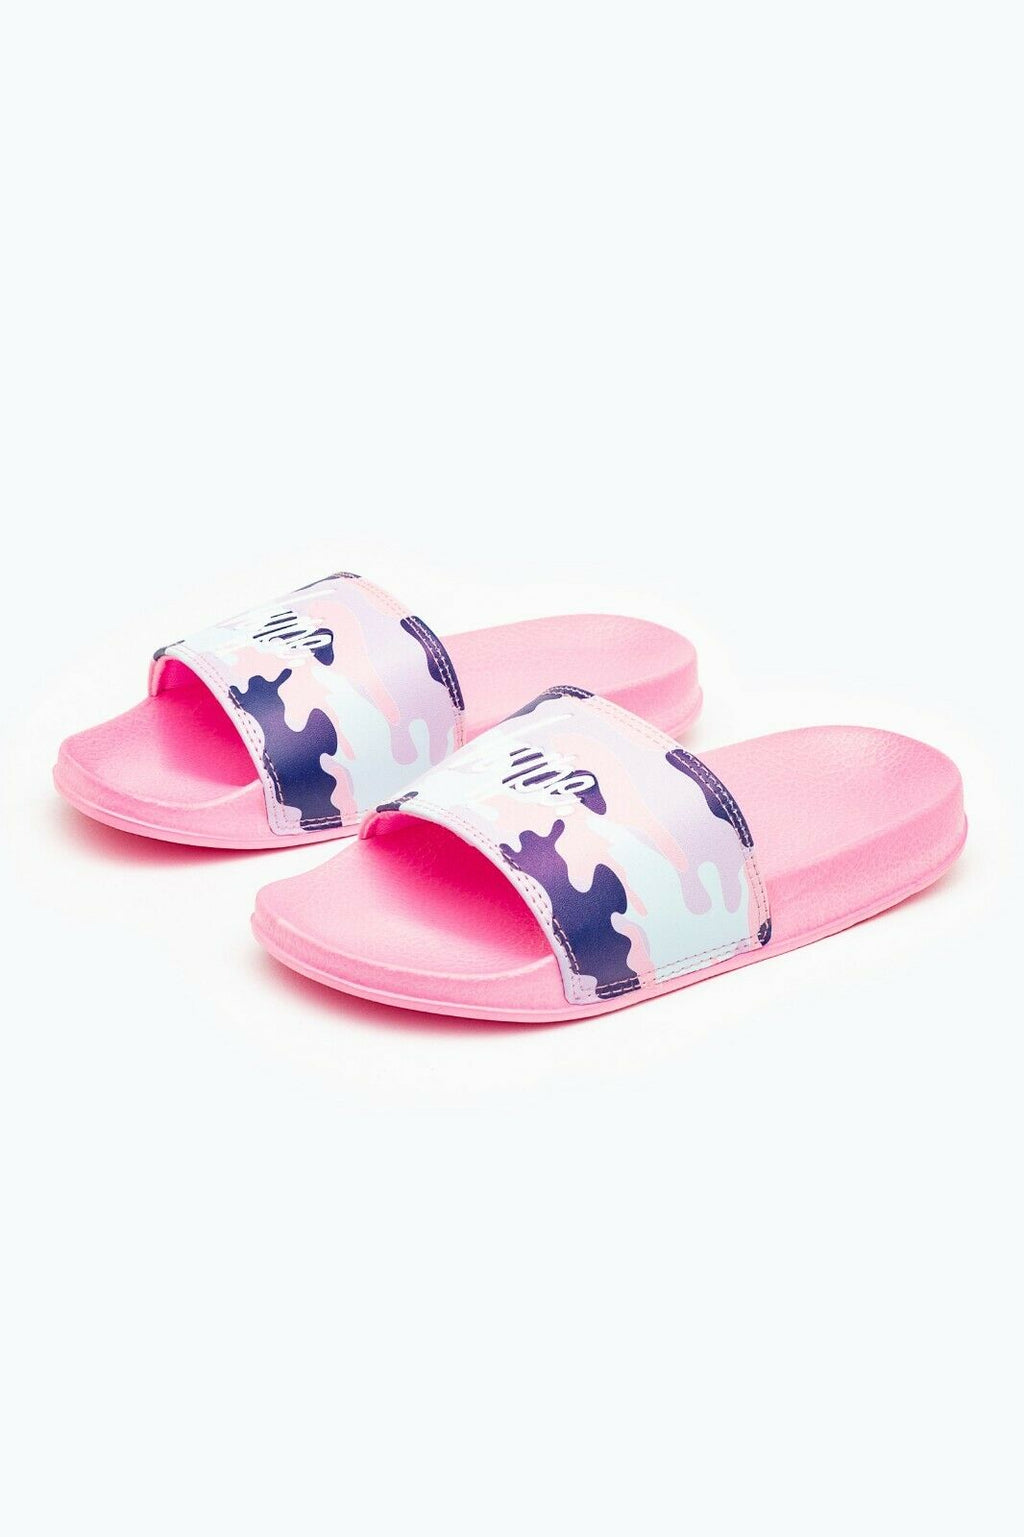 Pastel Camo Kids Sliders